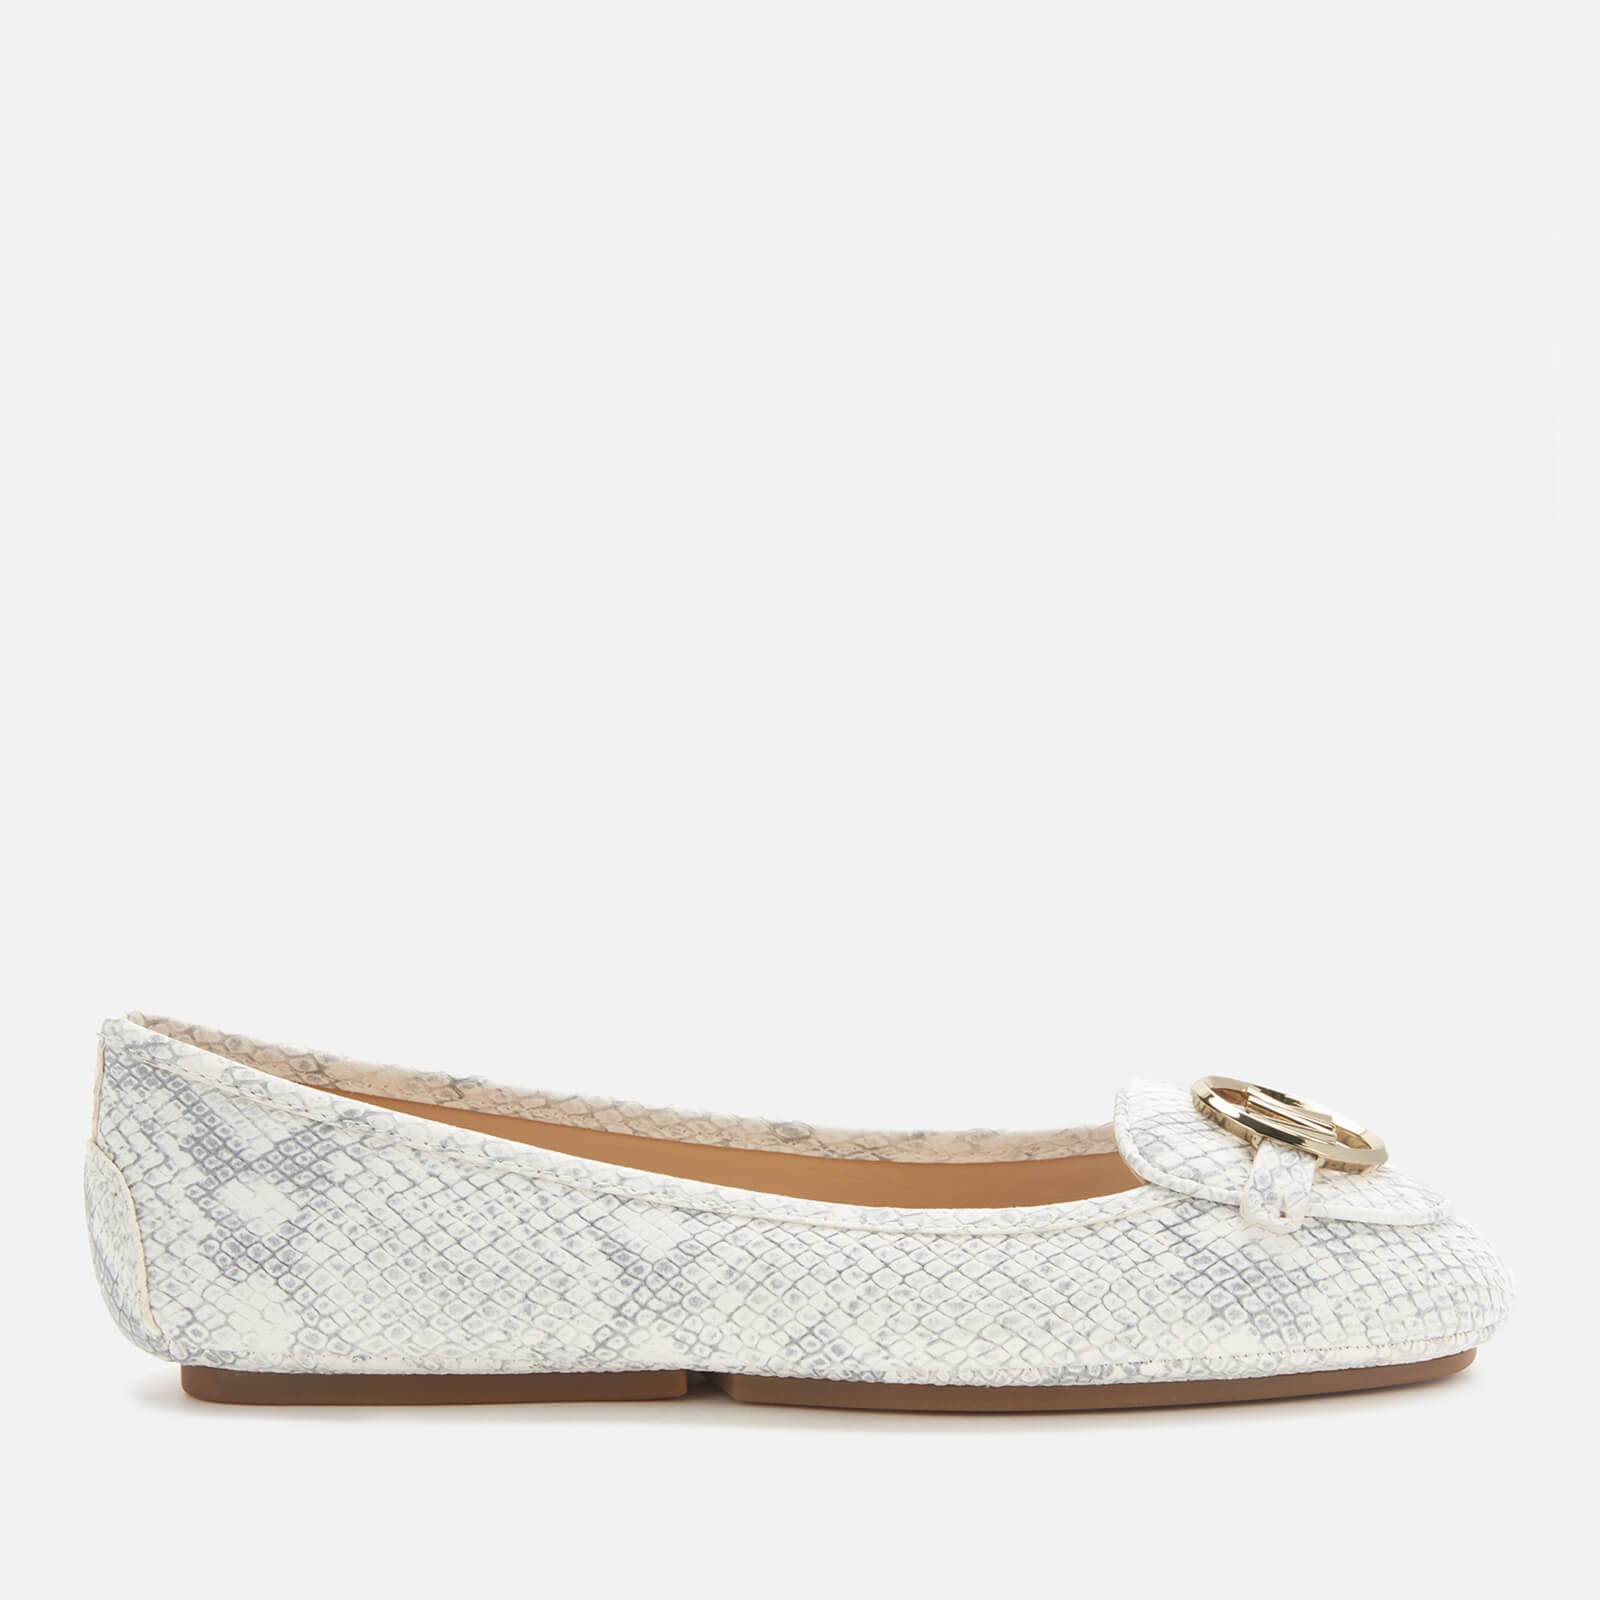 MICHAEL MICHAEL KORS Women's Lillie Moc Python Embossed Leather Flats - Natural - UK 5/US 8